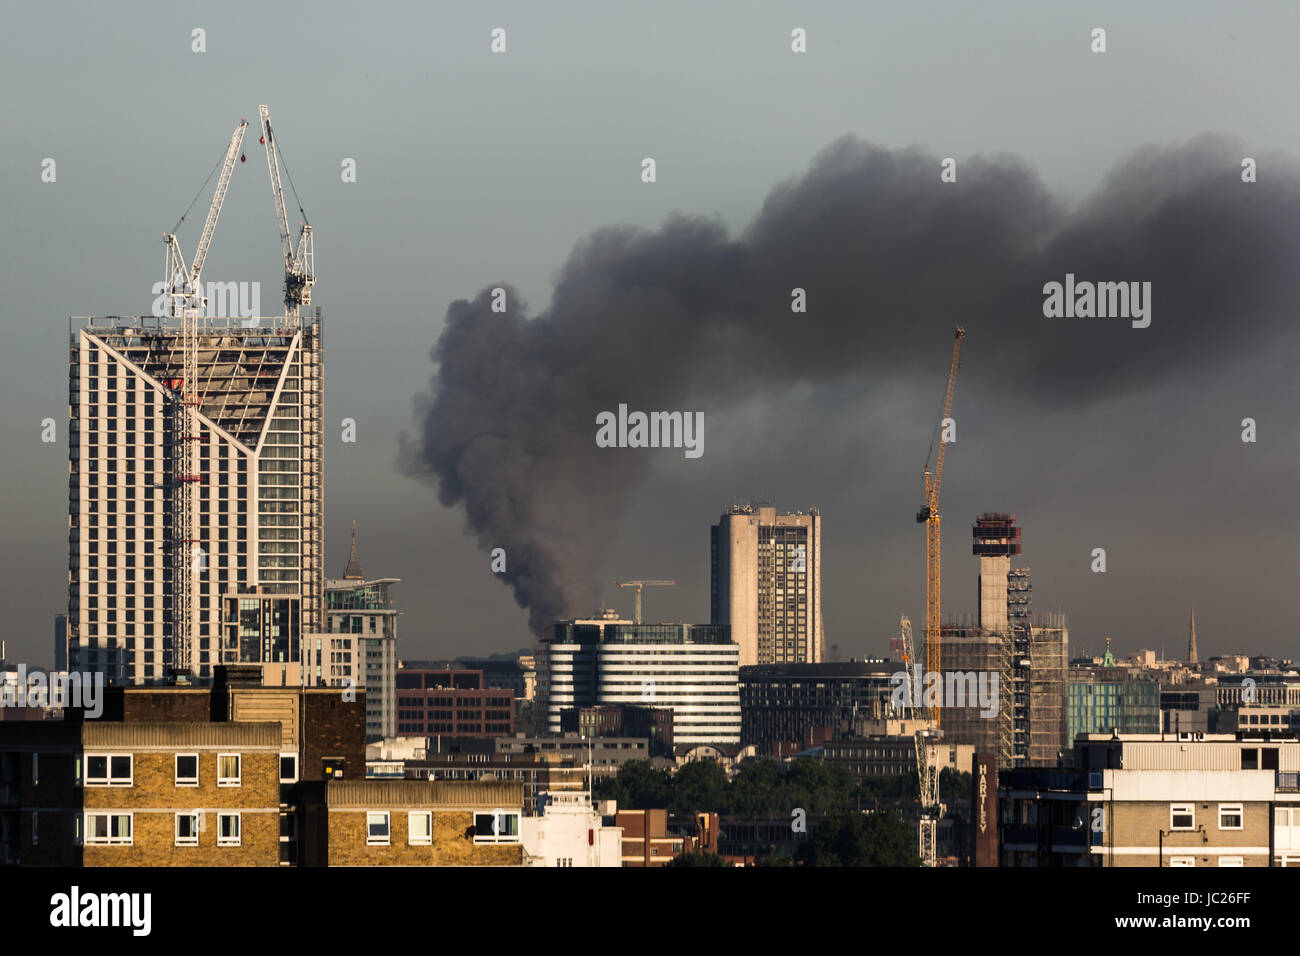 London, UK. 14th June, 2017. Huge fire at Grenfell Tower seen from south east London © Guy Corbishley/Alamy Live Stock Photo